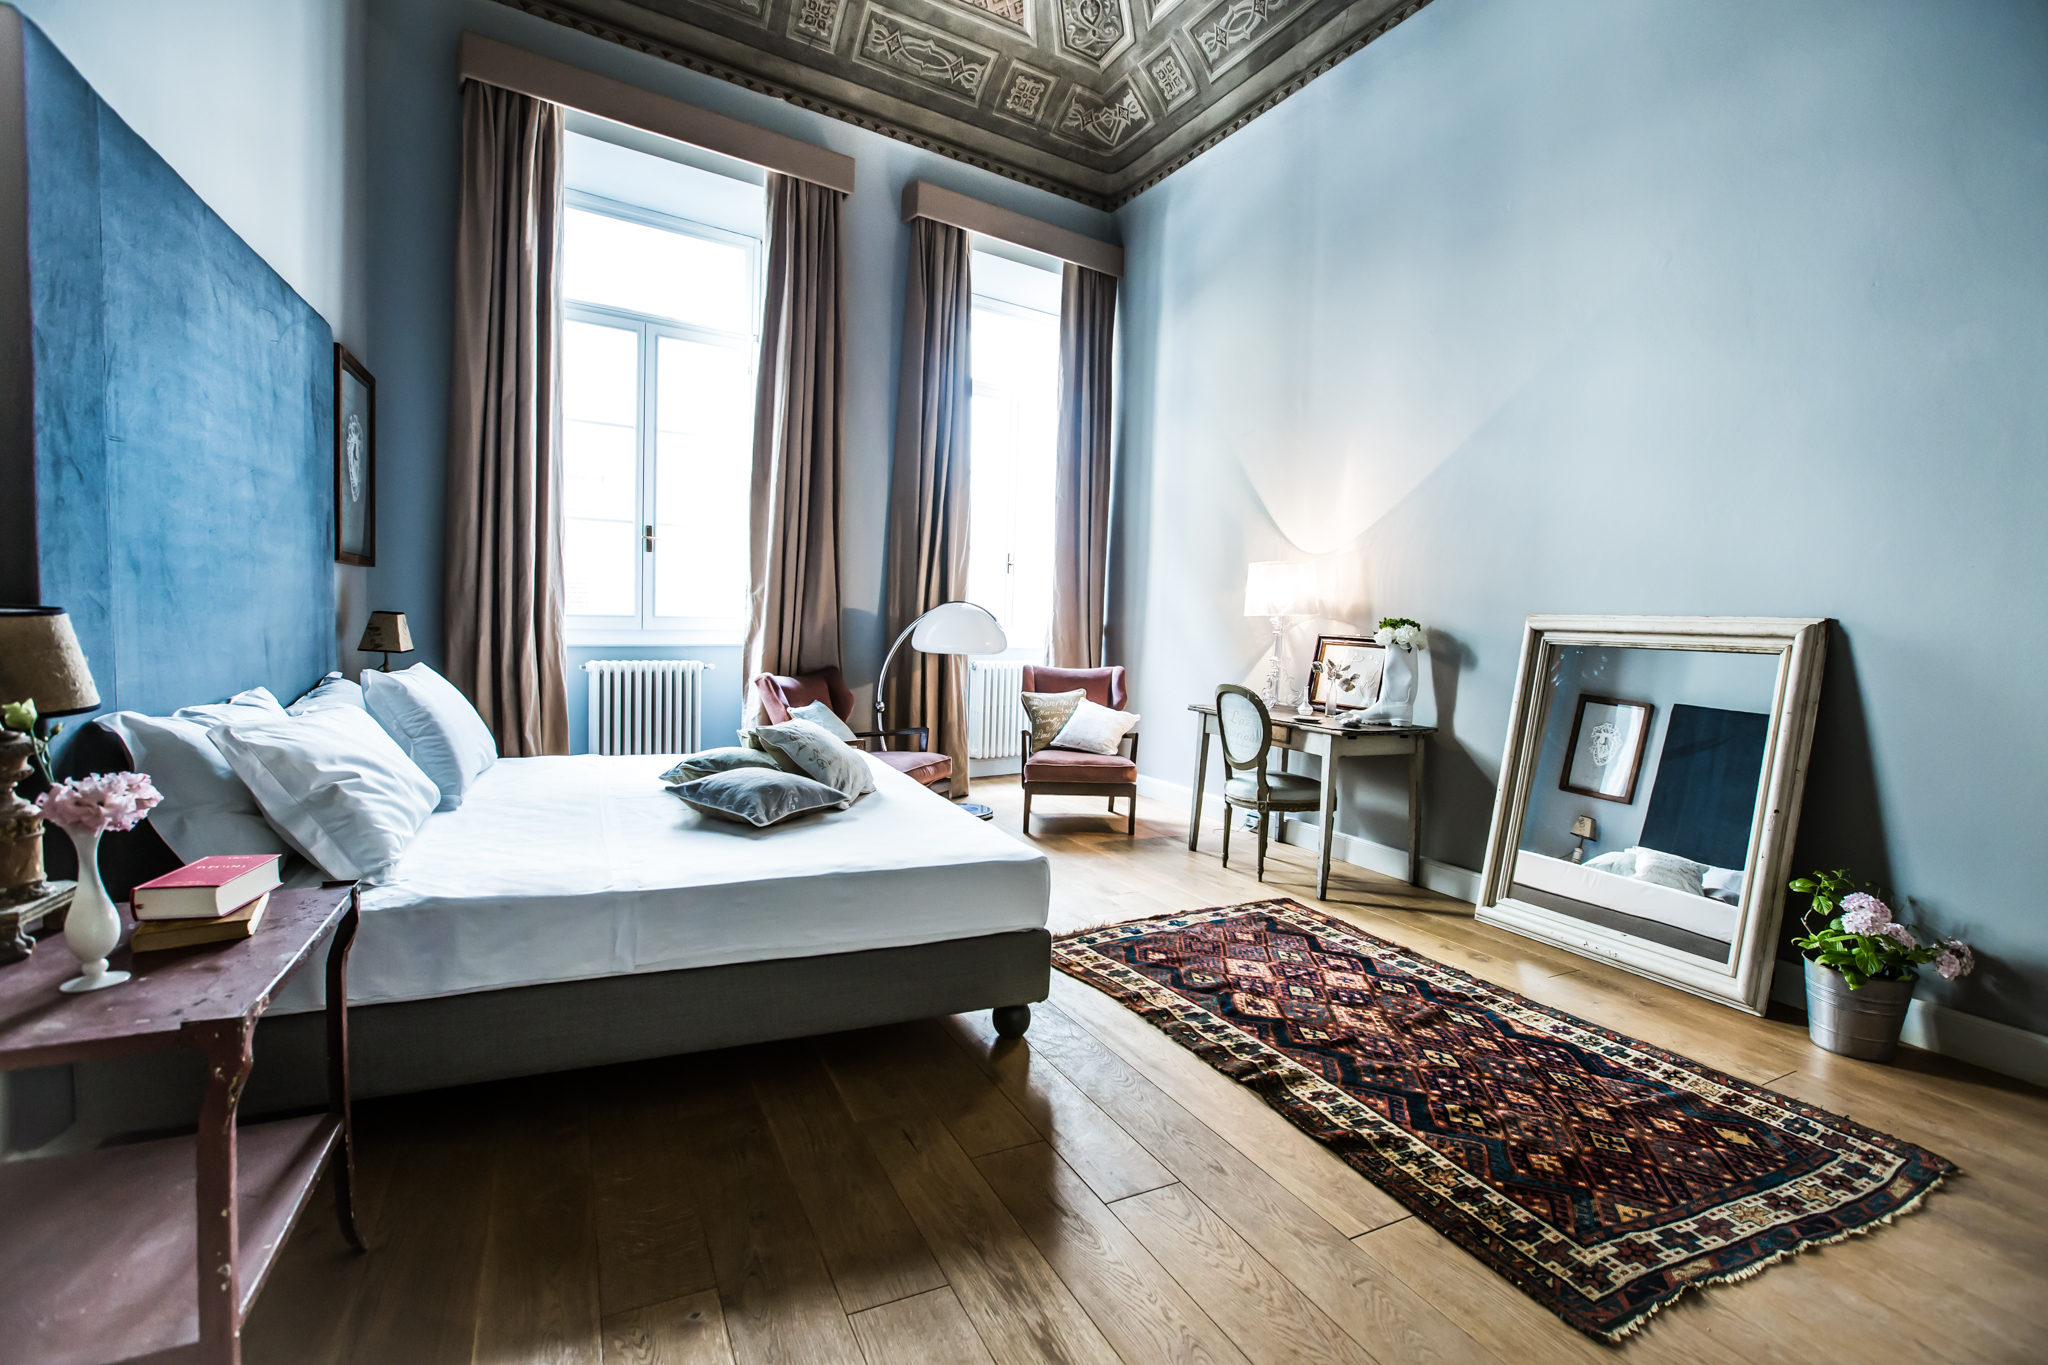 The Best of Florence - SoprArno Suites - A Luxury Hotel with Personality